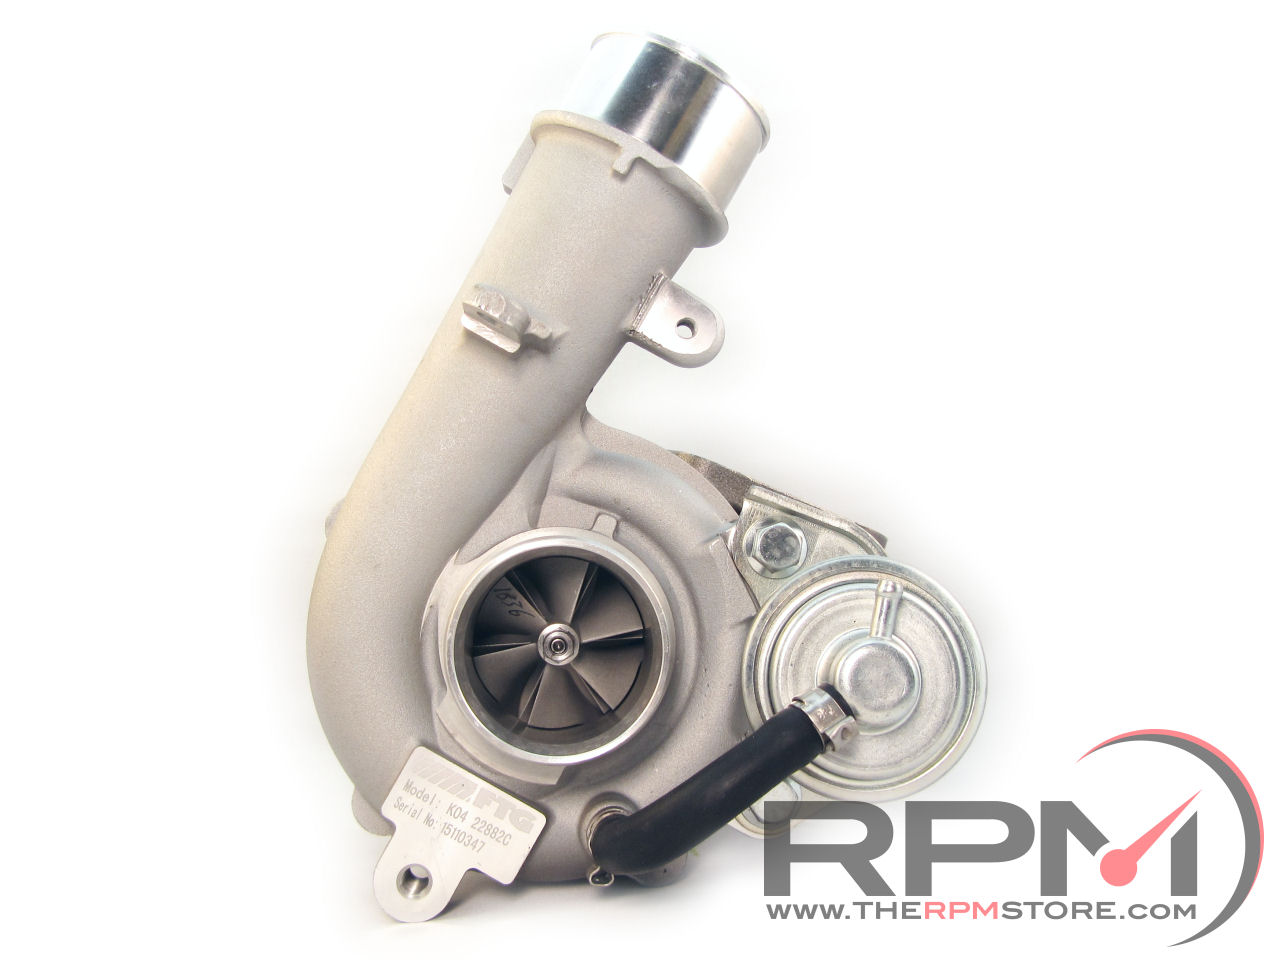 FTG K04-882 OEM Replacement Turbo for Mazdaspeed 3 / 6 / CX-7